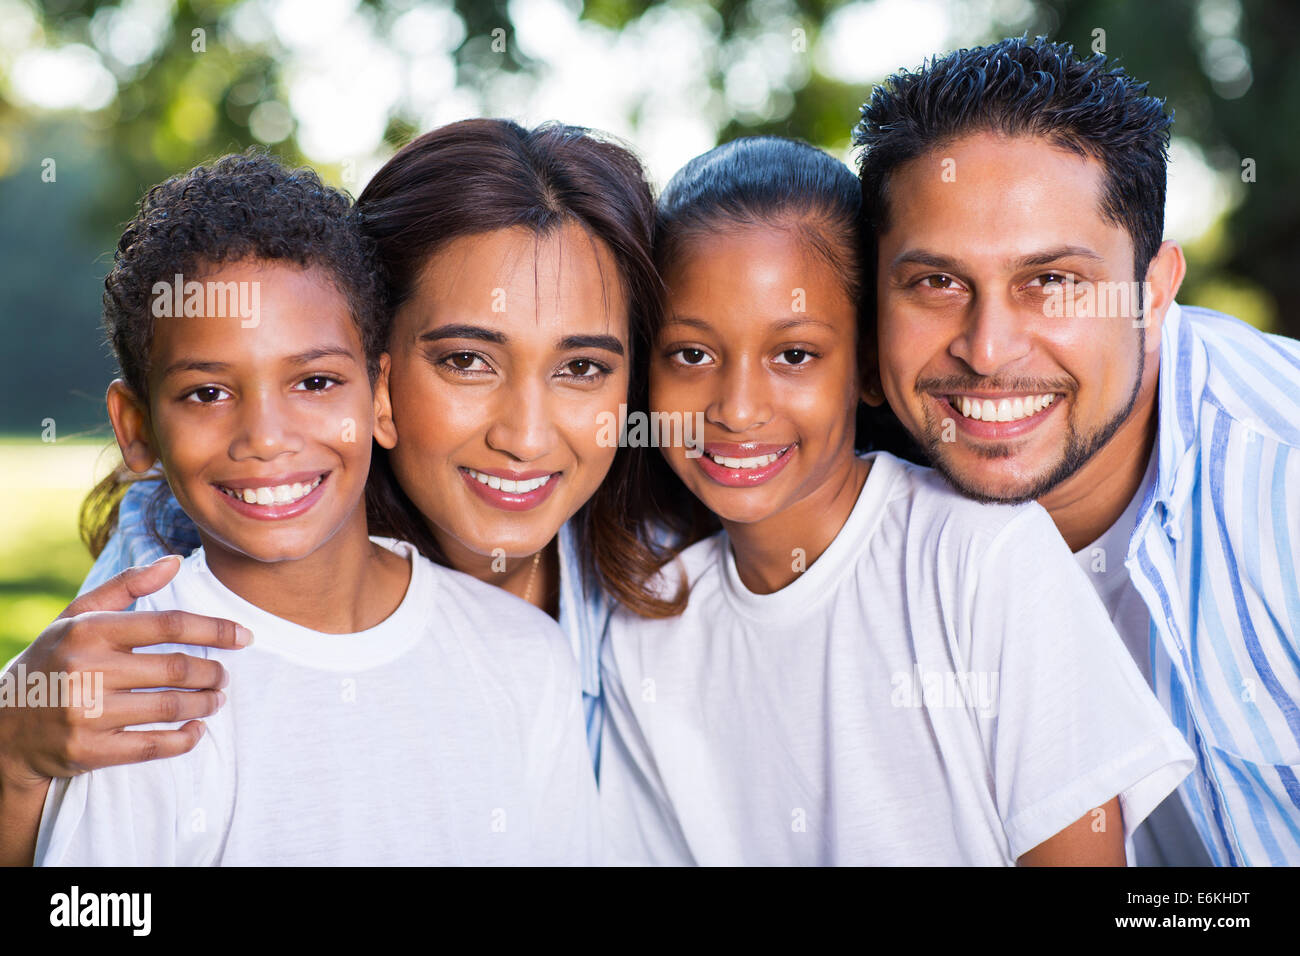 beautiful young Indian family portrait outdoors - Stock Image